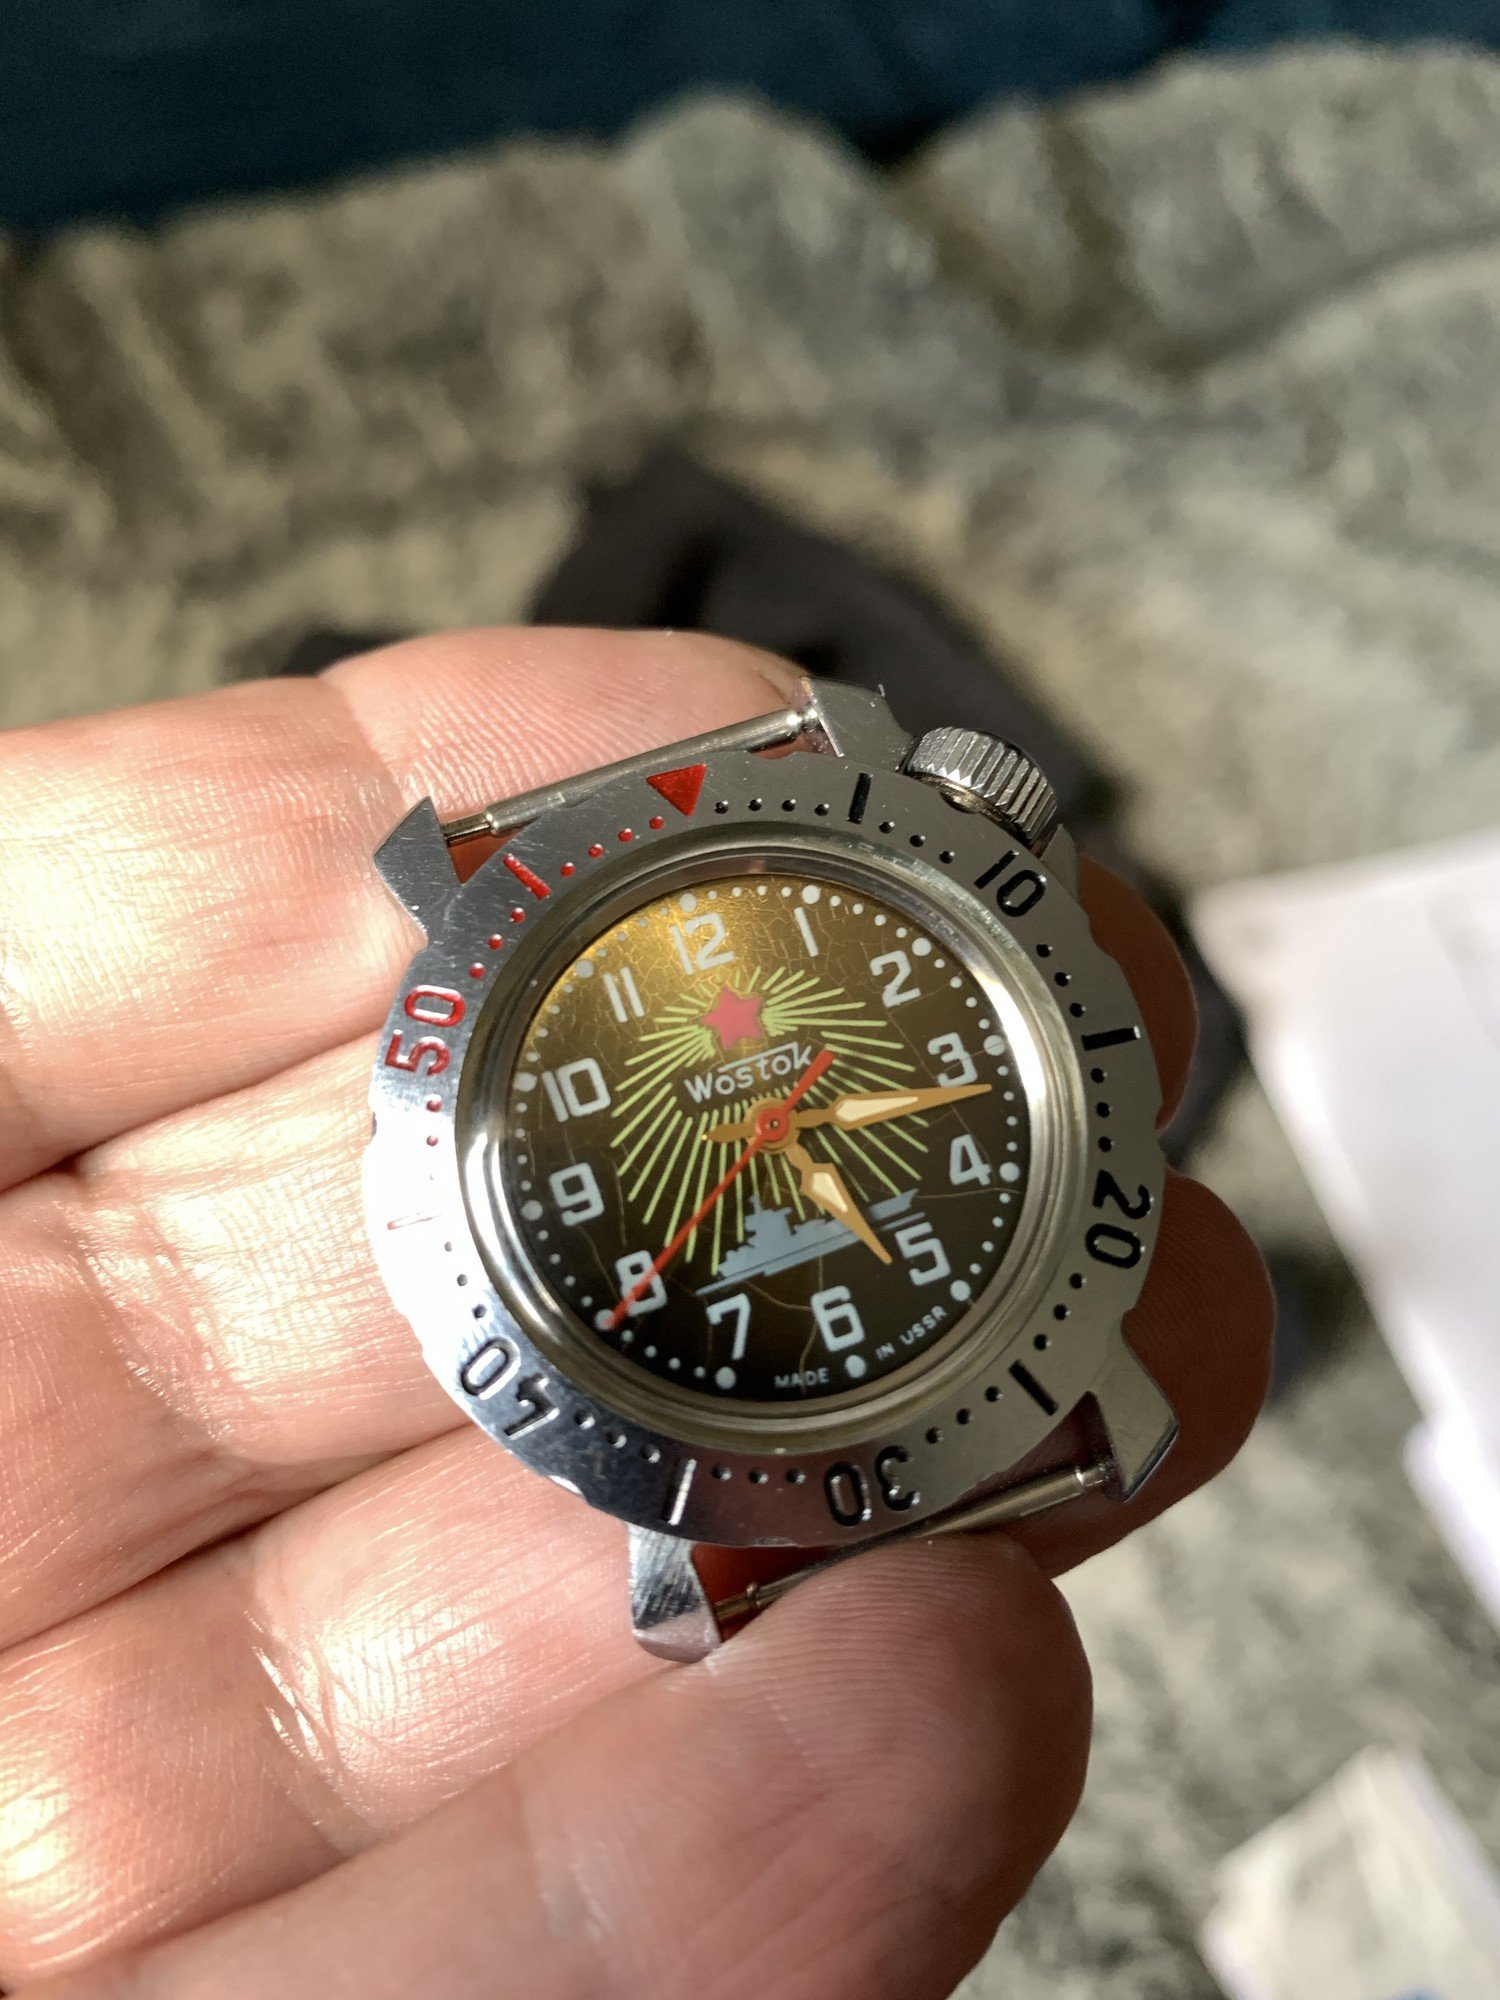 vostok rising sun red star CHIR - Page 13 210429053203103304